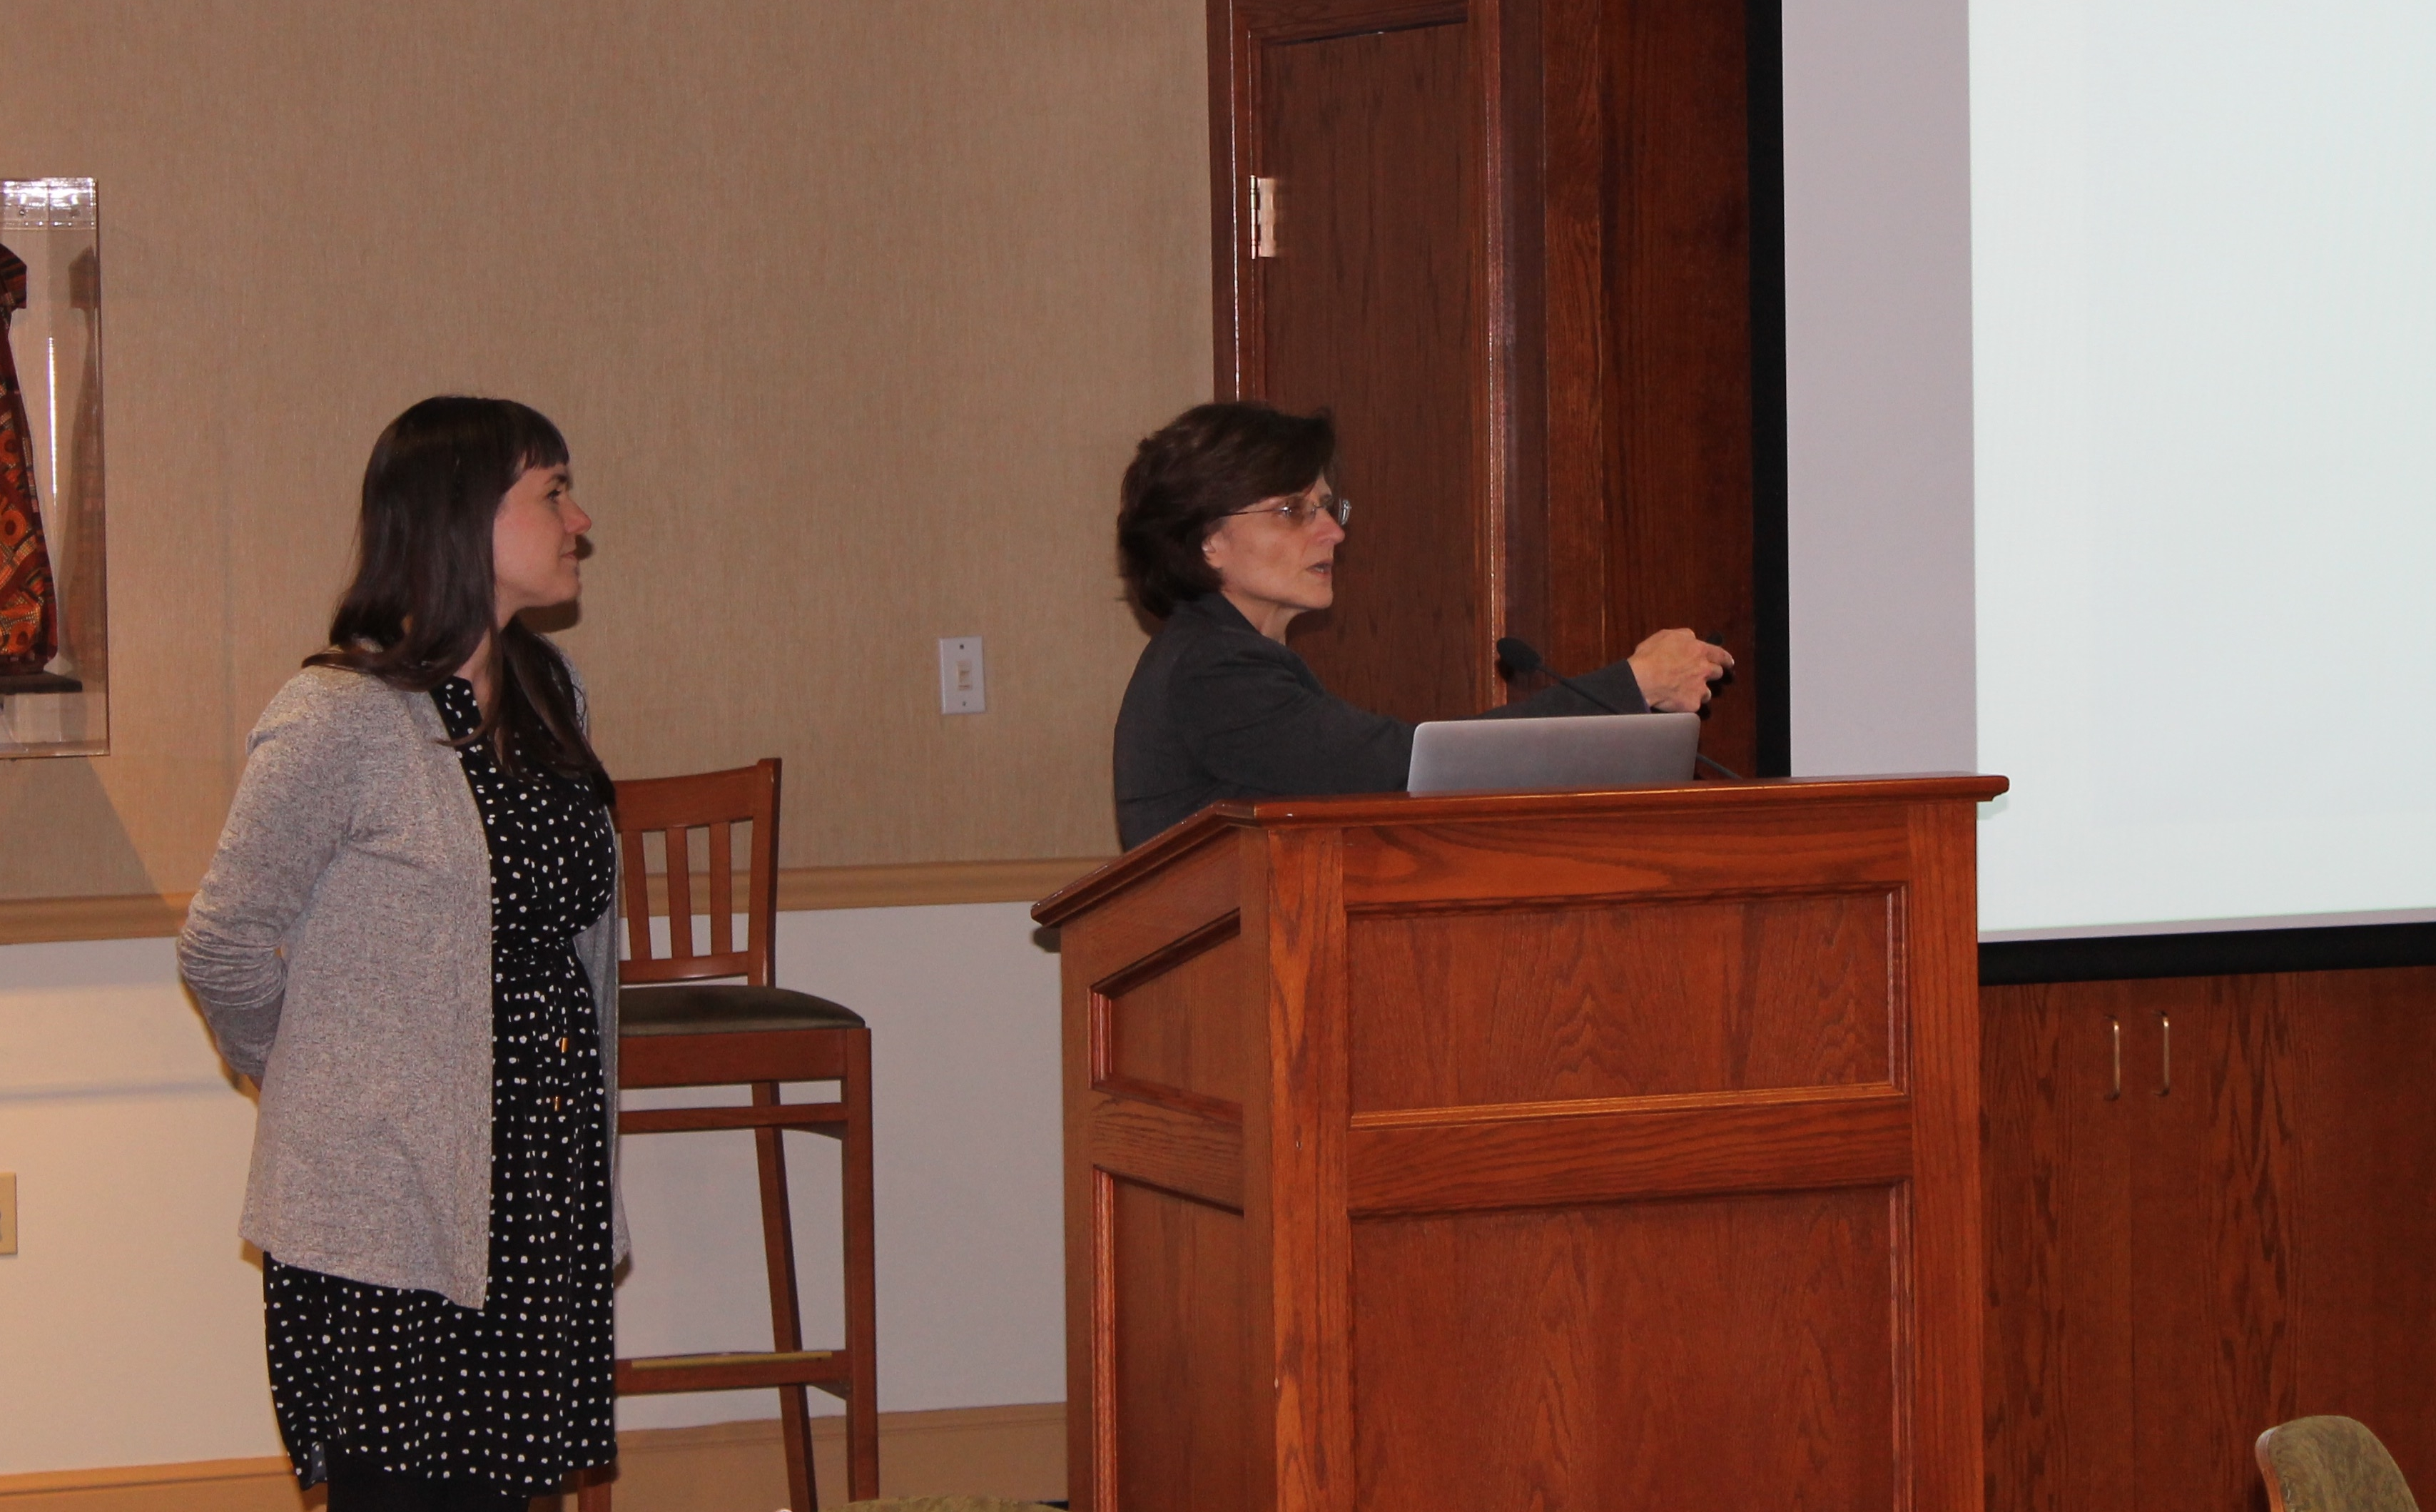 Drs. Lori Koelsch and Jana Patton-Vogt presented a summary of their NSF Advance Directive IDEAL-N grant related to Gender and Minority Equity. (February 2017)